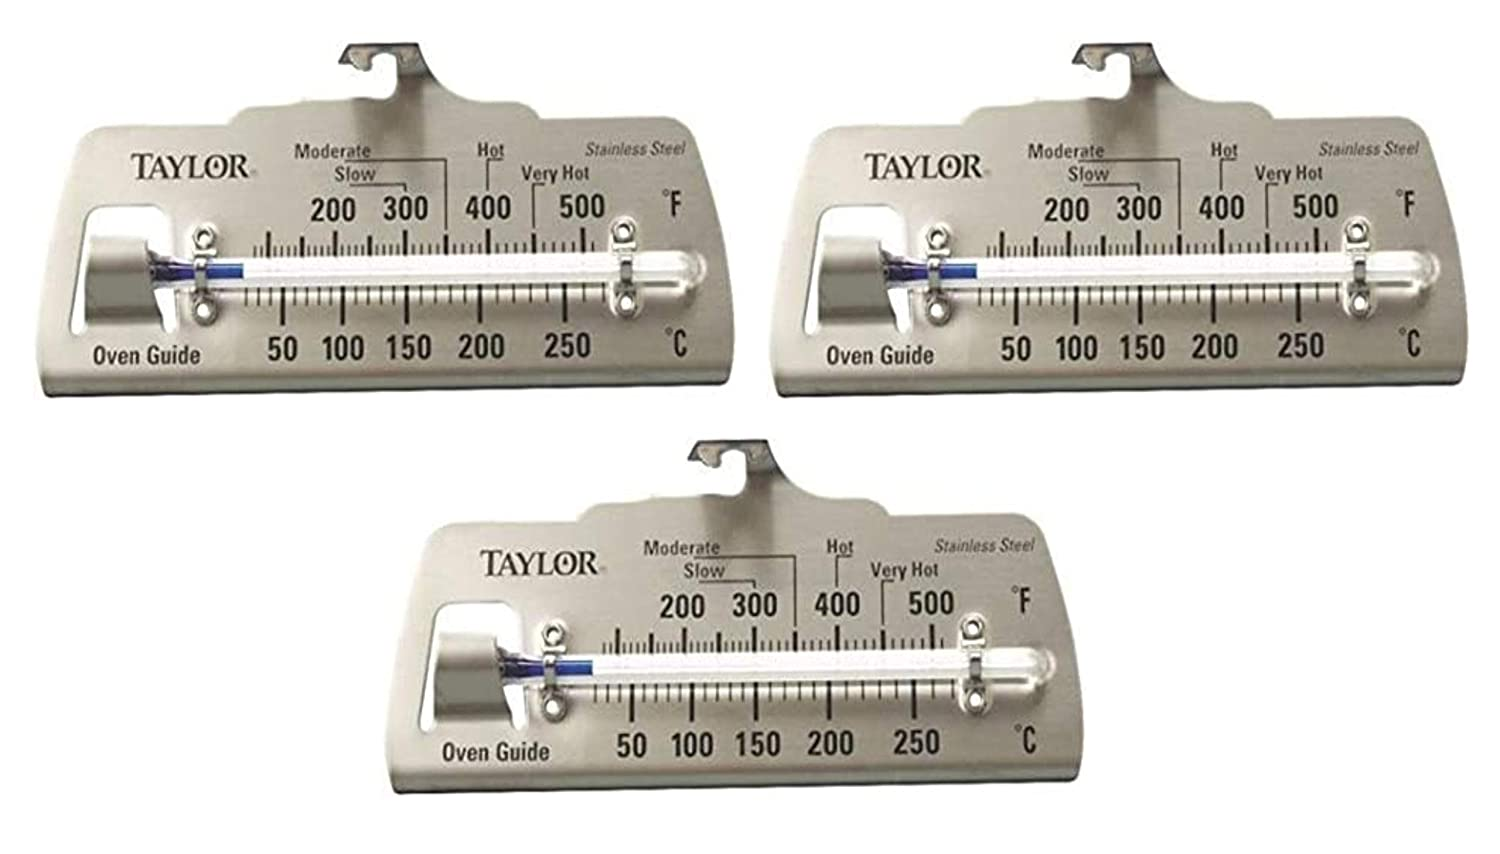 "Taylor Oven Thermometer 100 - 600 Deg F 4-7/8"" X 2-1/4"""